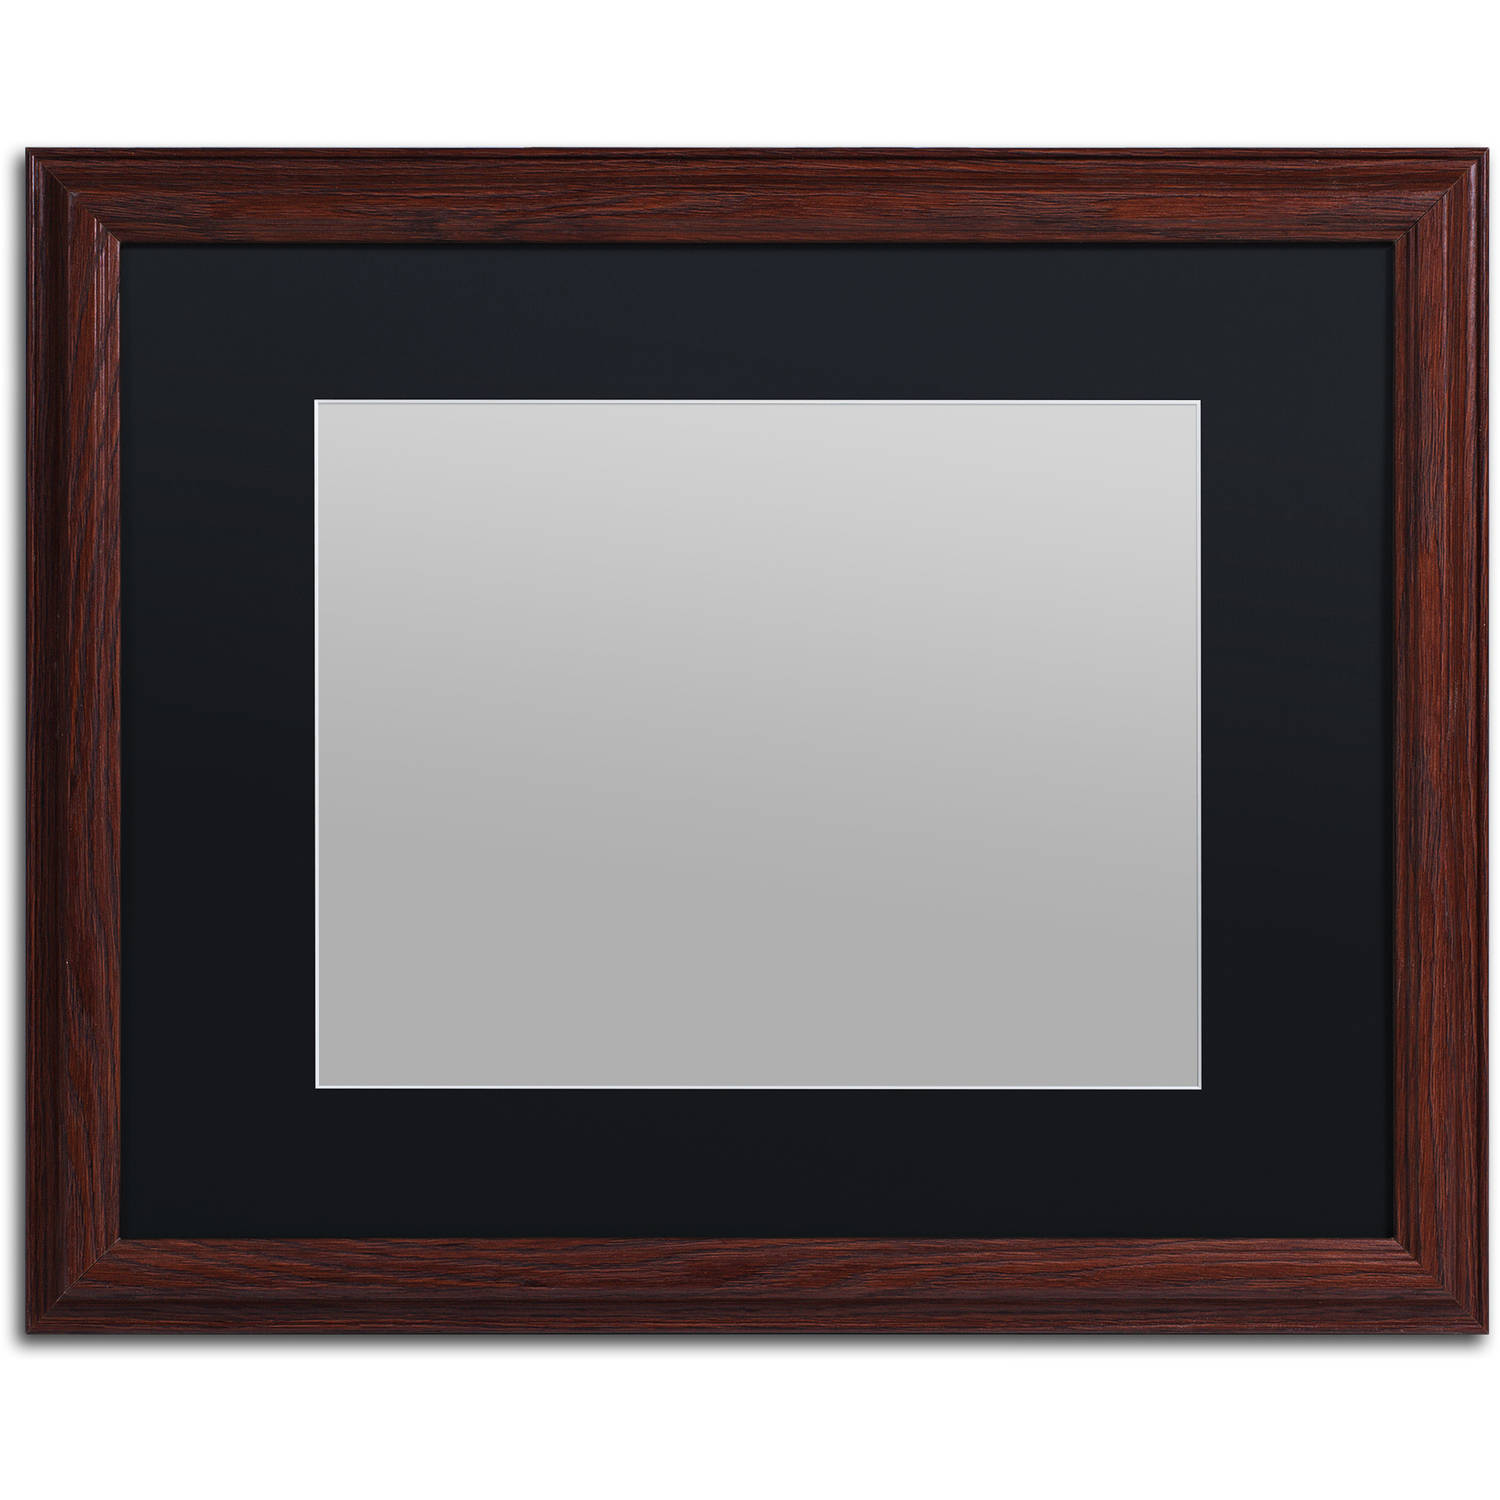 Trademark Fine Art Heavy Duty 16x20 Wood Picture Frame